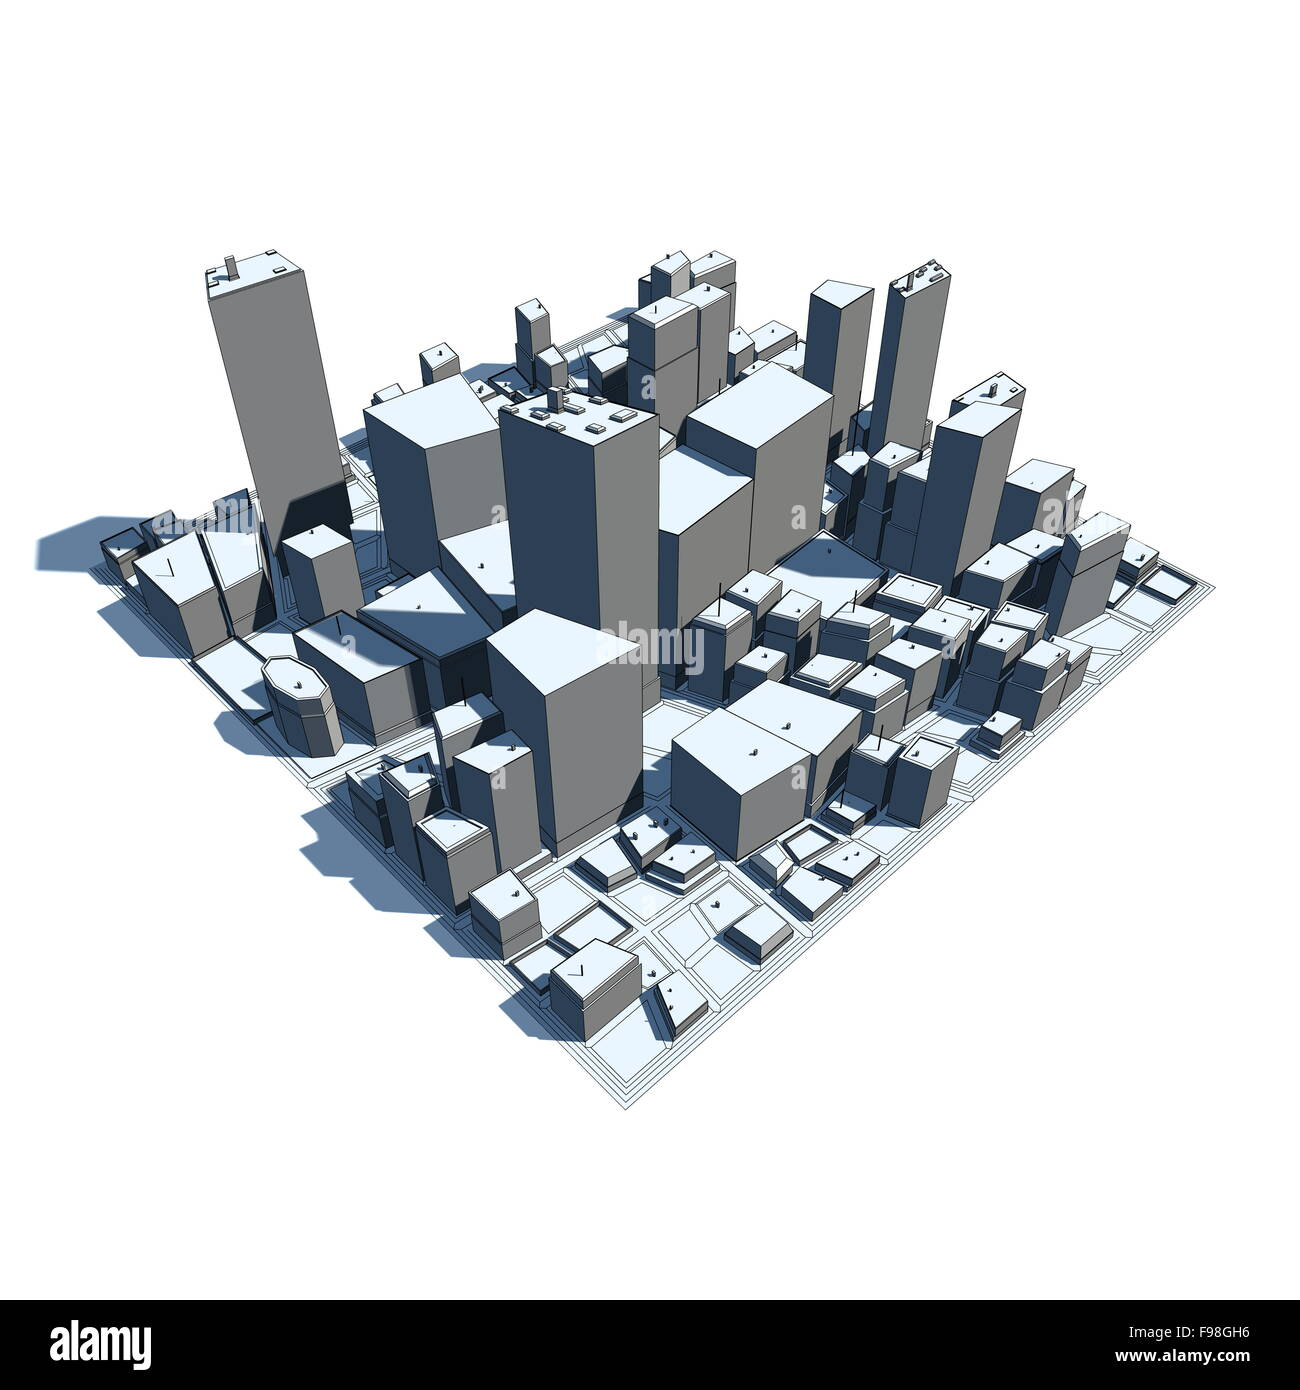 Cityscape Modèle 3D - Cartoon Syle Photo Stock